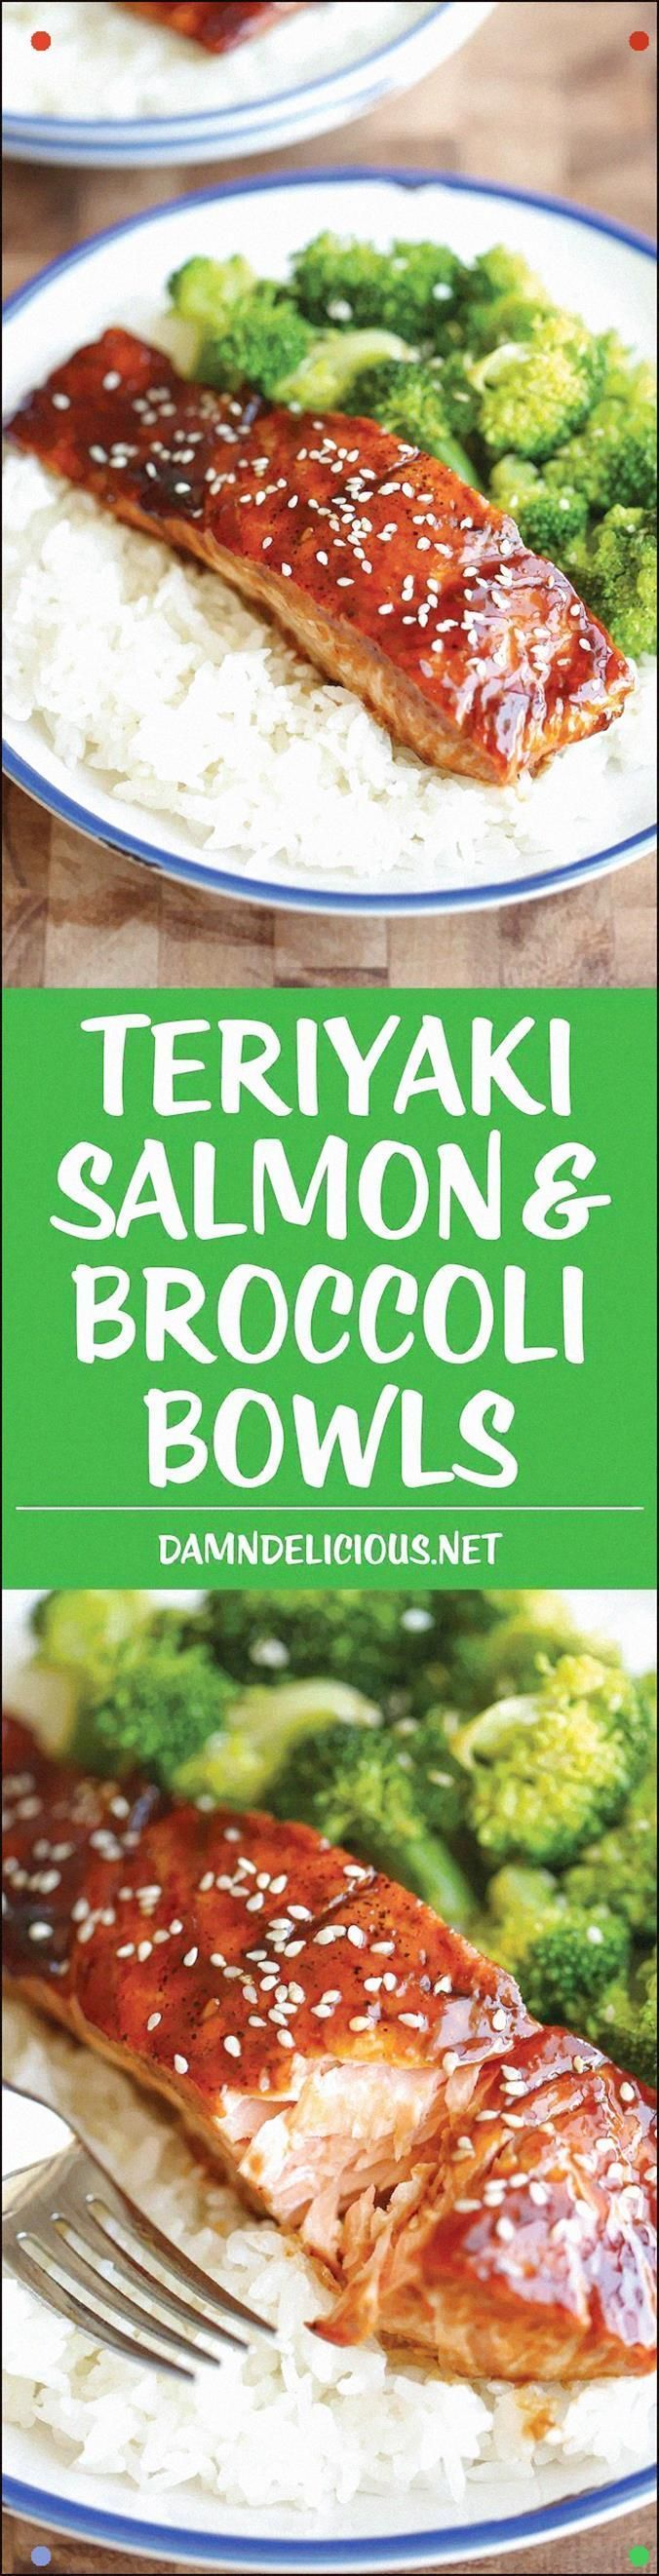 Teriyaki Salmon And Broccoli Bowls There's No Need For Takeout Anymore... You Can Easily Make Homemade #Salmon Teriyaki Bowls In Minutes #teriyakisalmon Teriyaki Salmon And Broccoli Bowls There's No Need For Takeout Anymore... You Can Easily Make Homemade #Salmon Teriyaki Bowls In Minutes #salmonteriyaki Teriyaki Salmon And Broccoli Bowls There's No Need For Takeout Anymore... You Can Easily Make Homemade #Salmon Teriyaki Bowls In Minutes #teriyakisalmon Teriyaki Salmon And Broccoli Bowls There' #salmonteriyaki